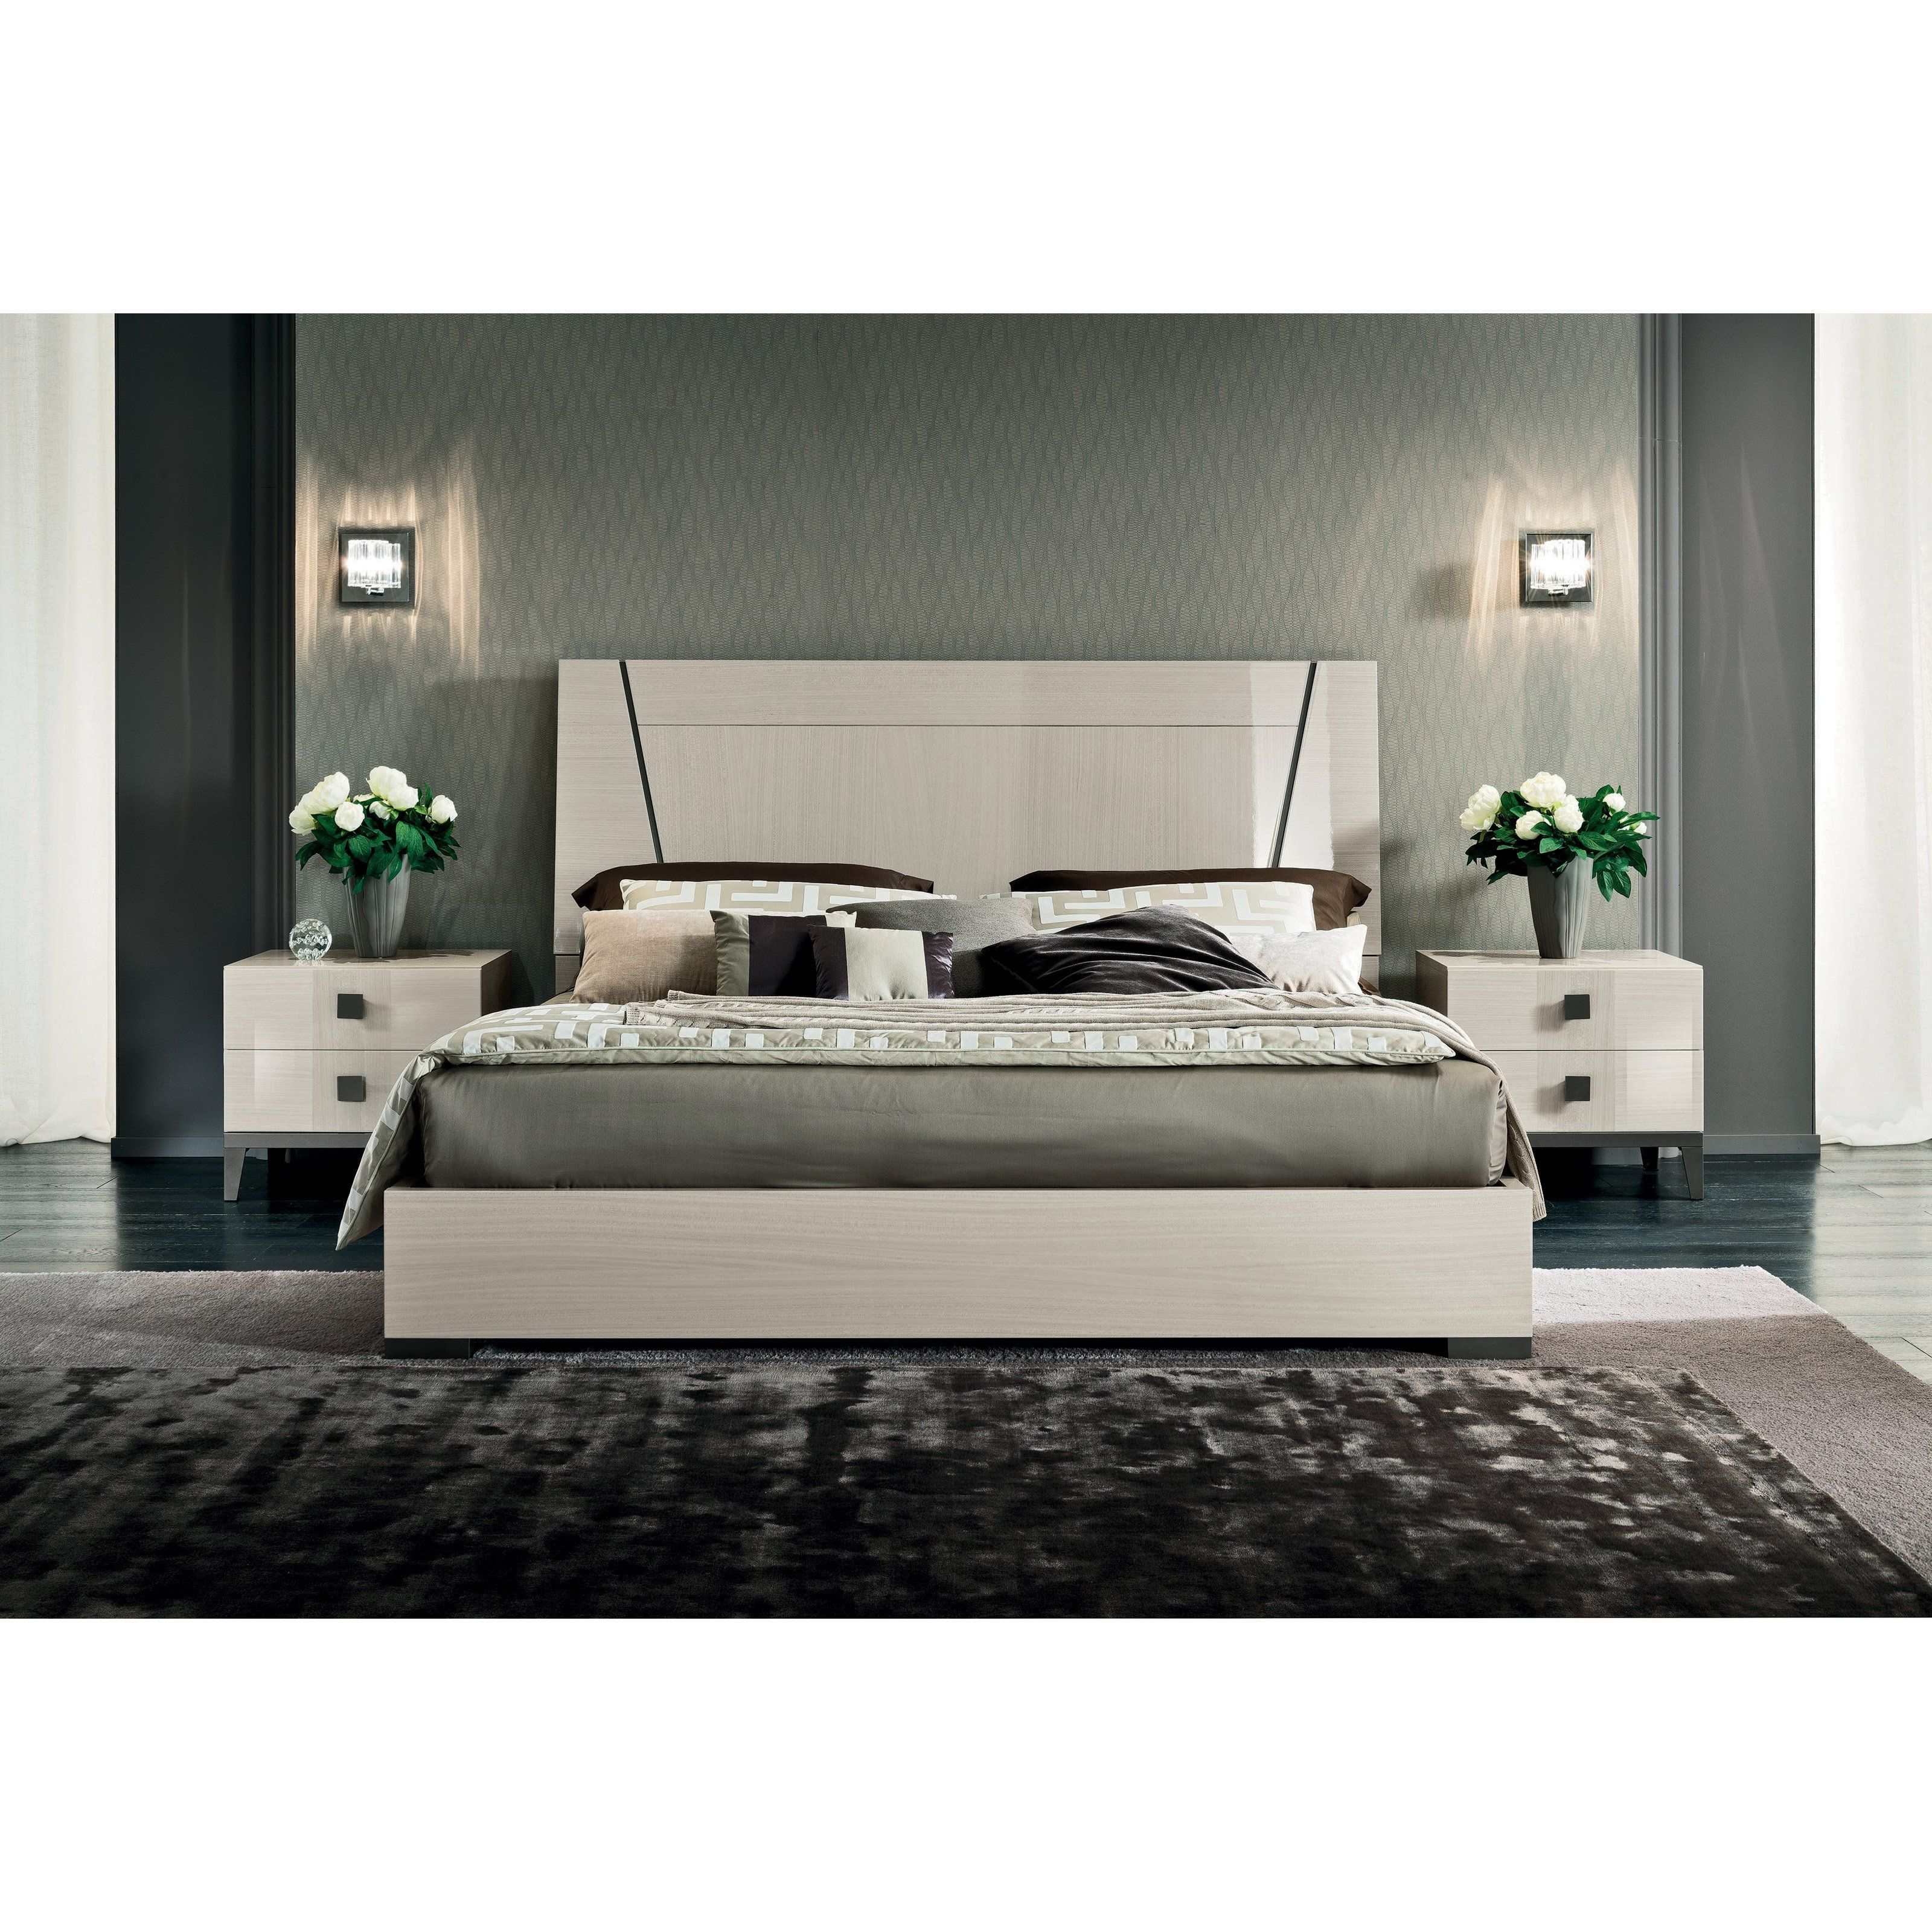 ALF UNO Mont Blanc Platform Bed PJMB0250 (With images